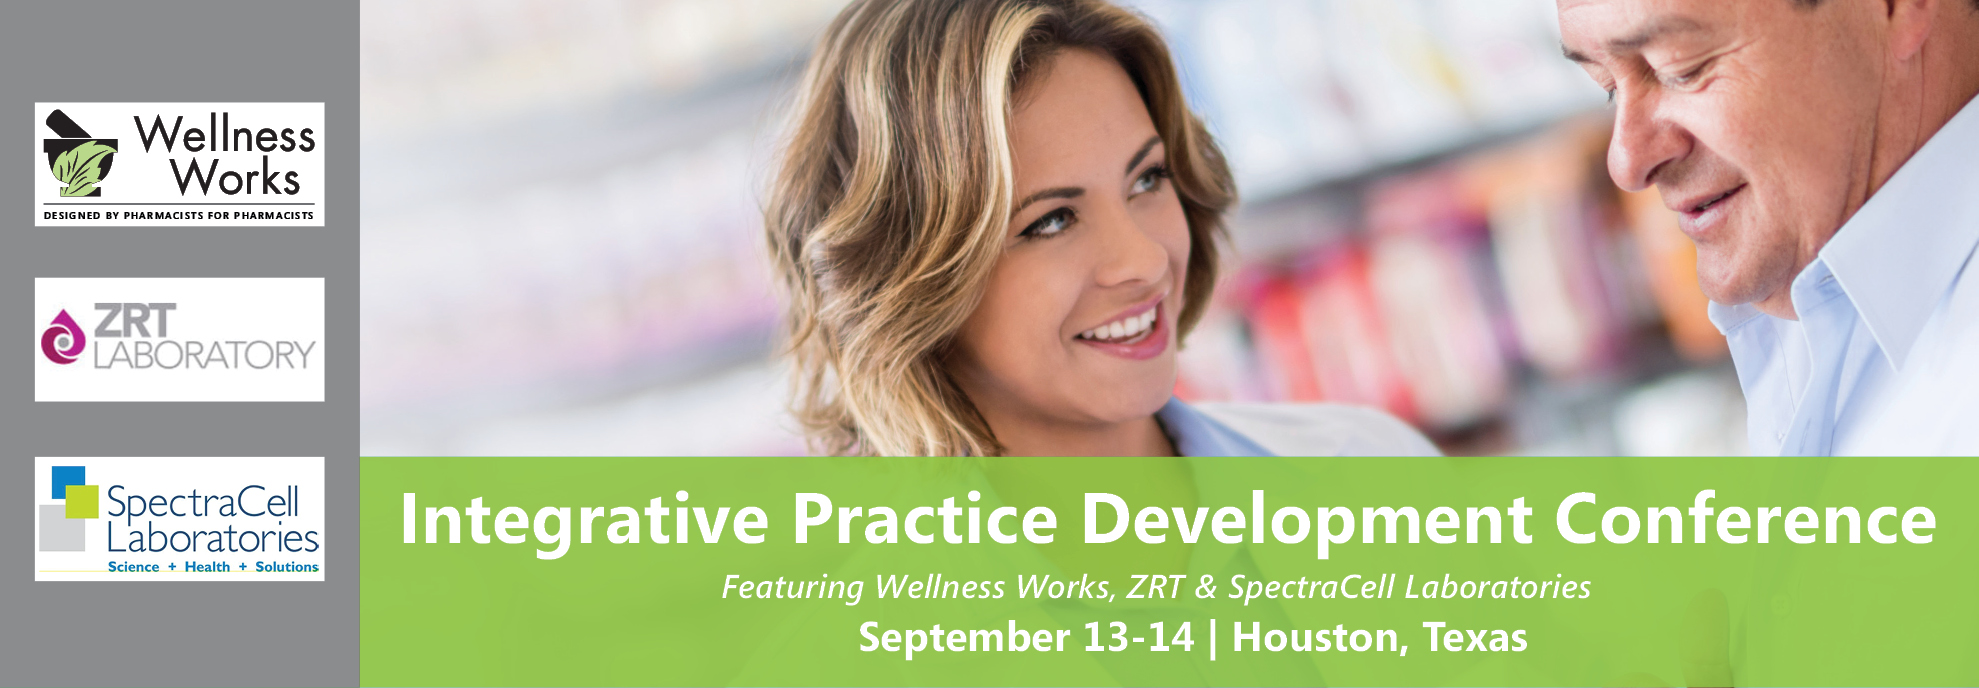 Integrative Practice Development Conference